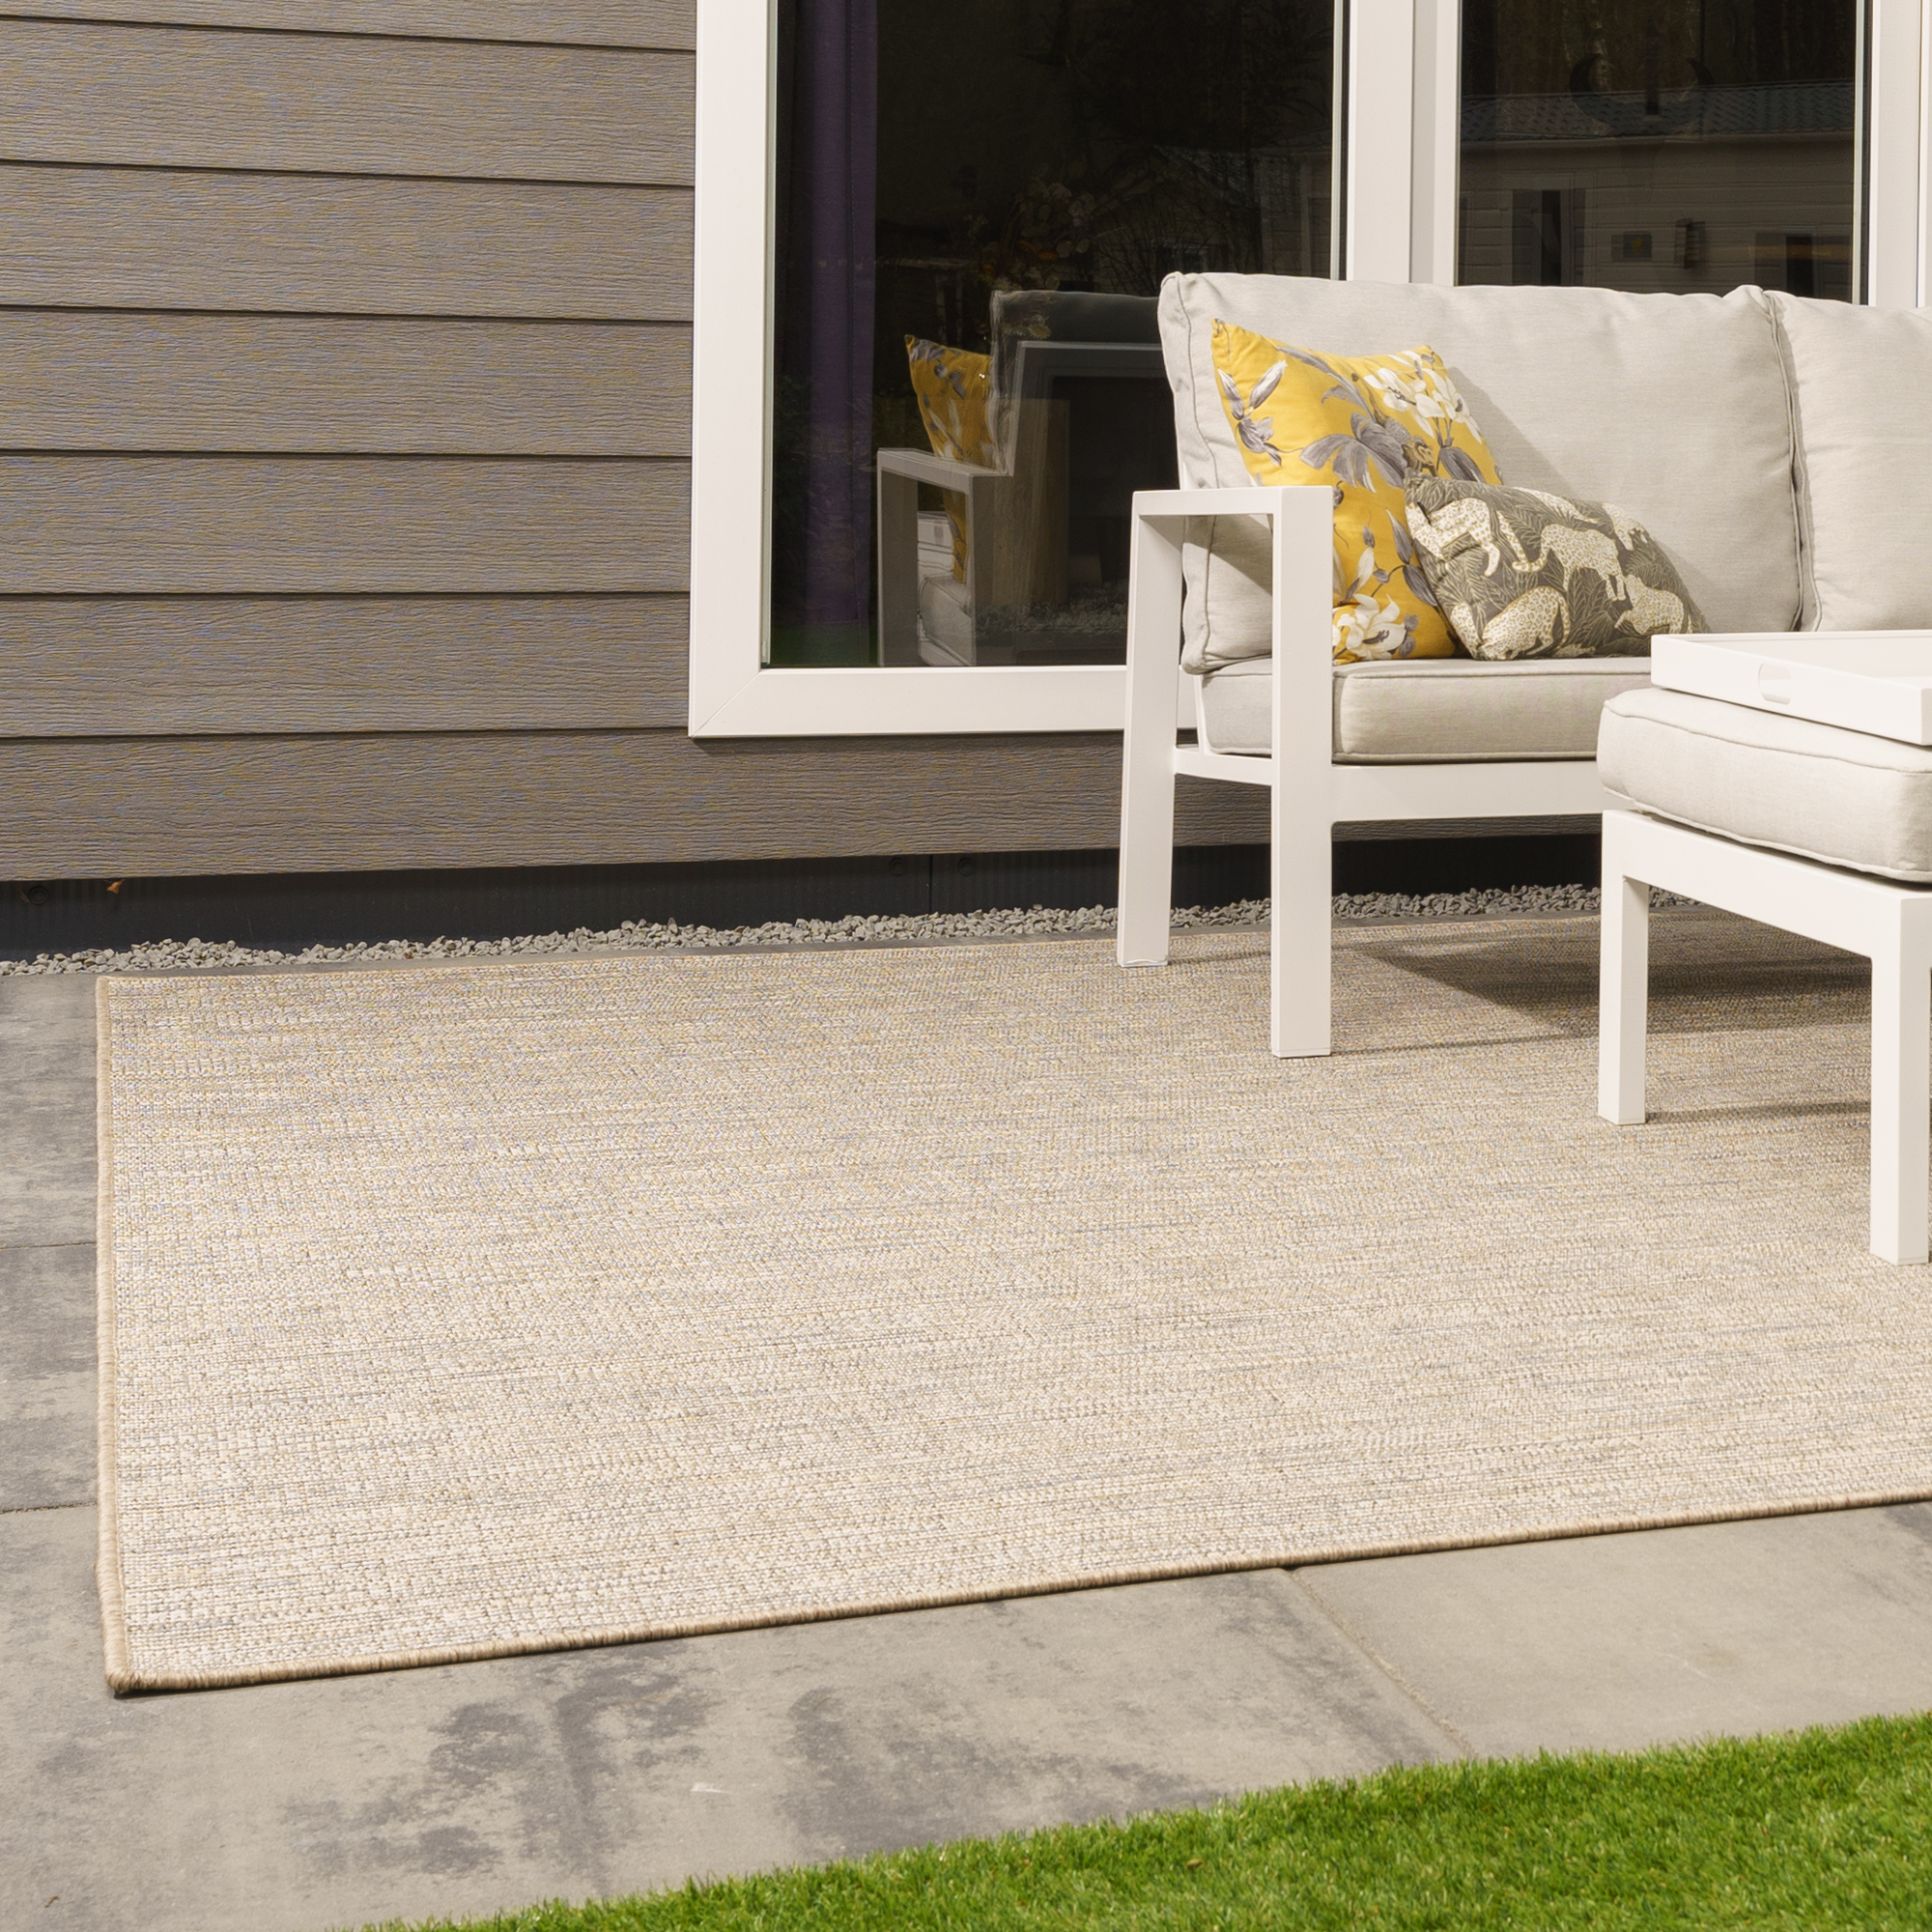 Vloerkleed Xilento Outdoor 4001-51